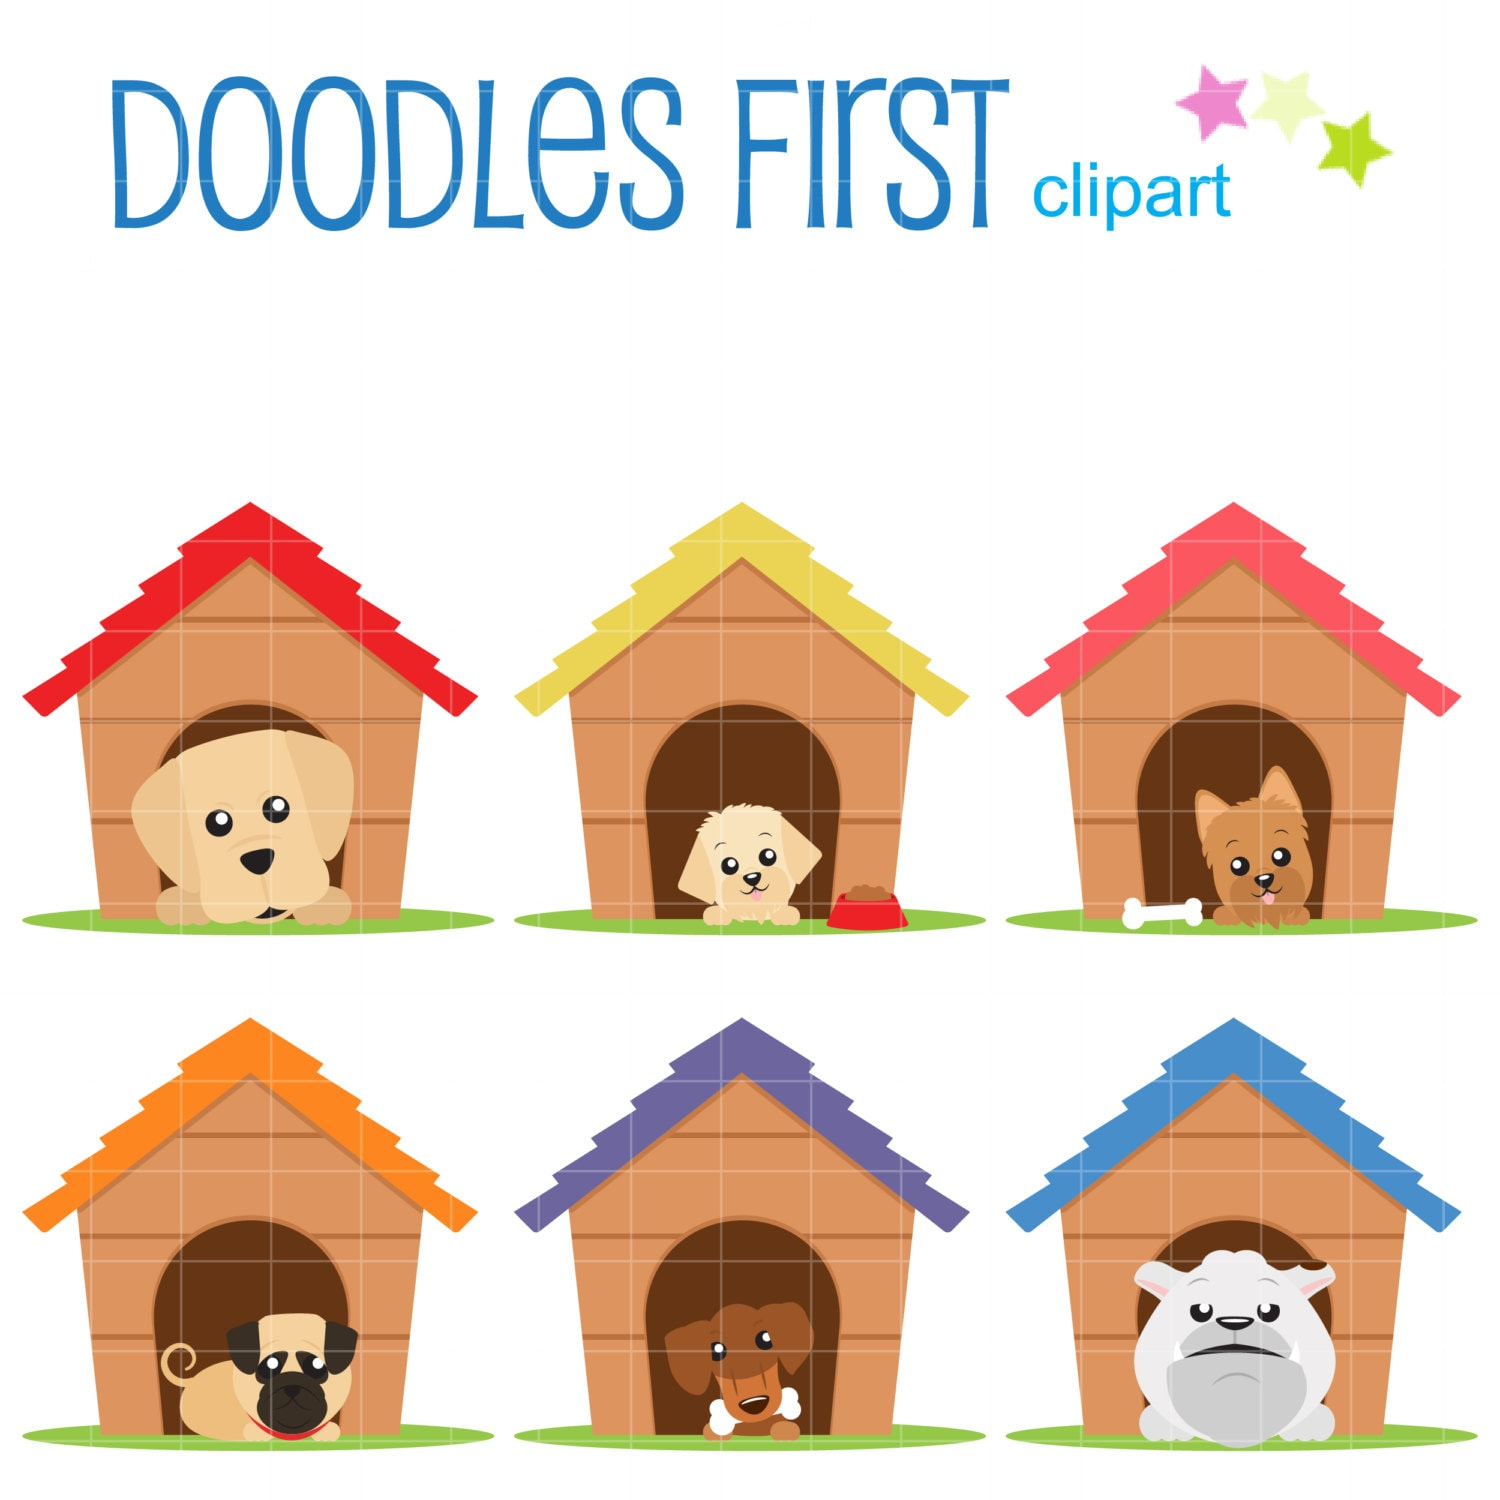 clipart of dog houses - photo #46